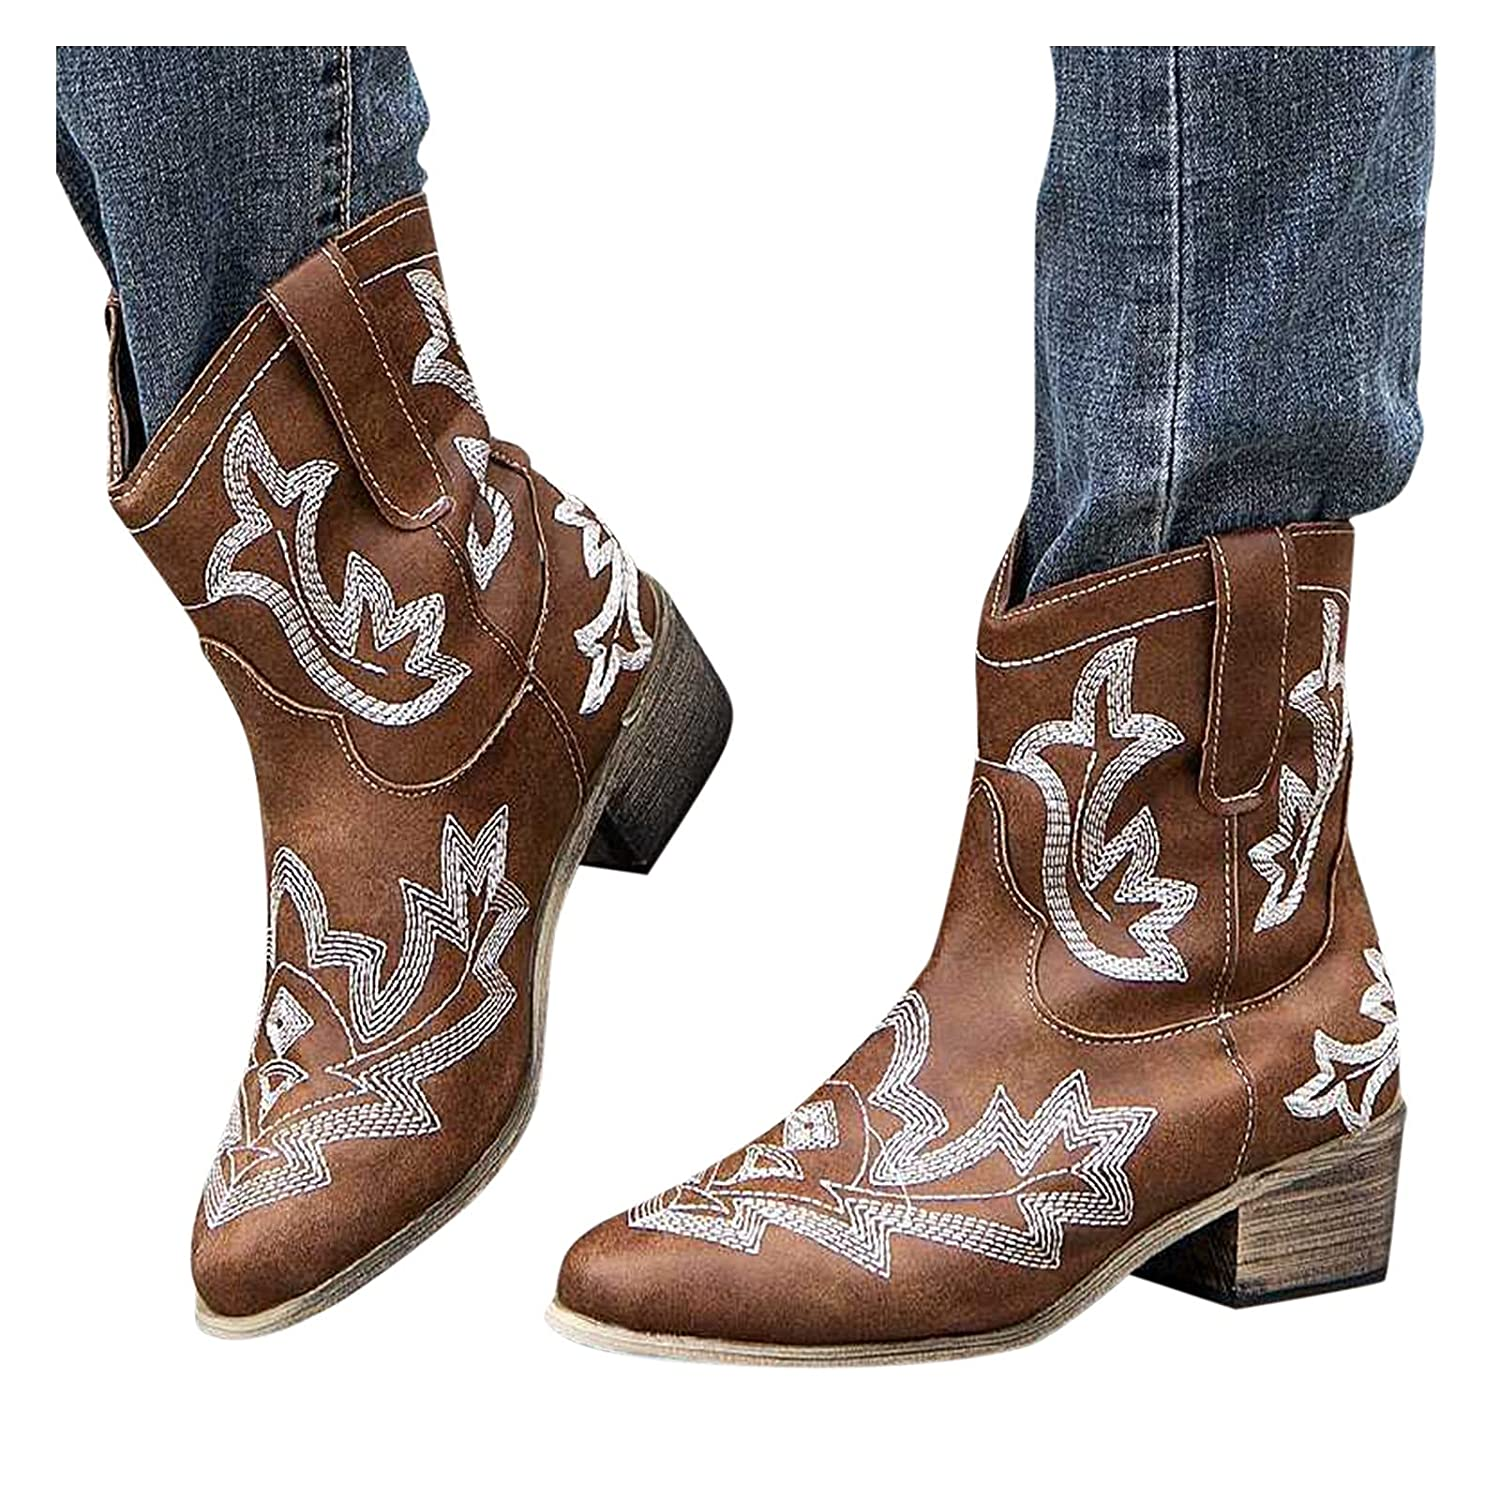 discount Reokoou Women's Max 86% OFF Western Bootie Retro Leather Slip On Embroidery